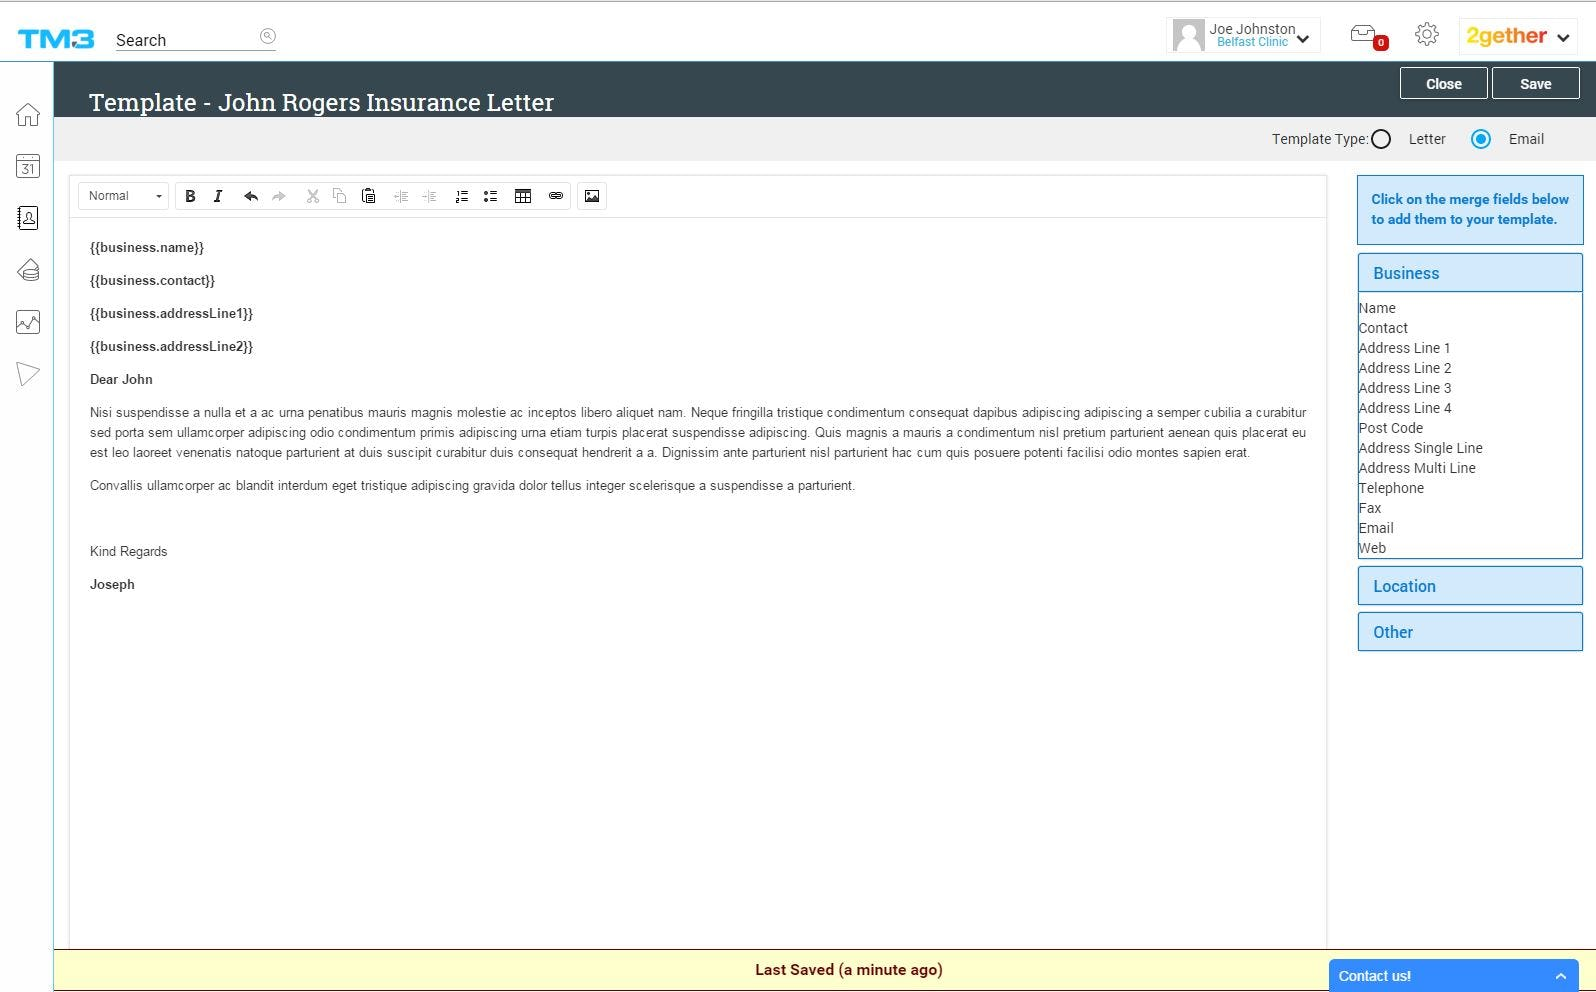 TM3 Software - Email communications